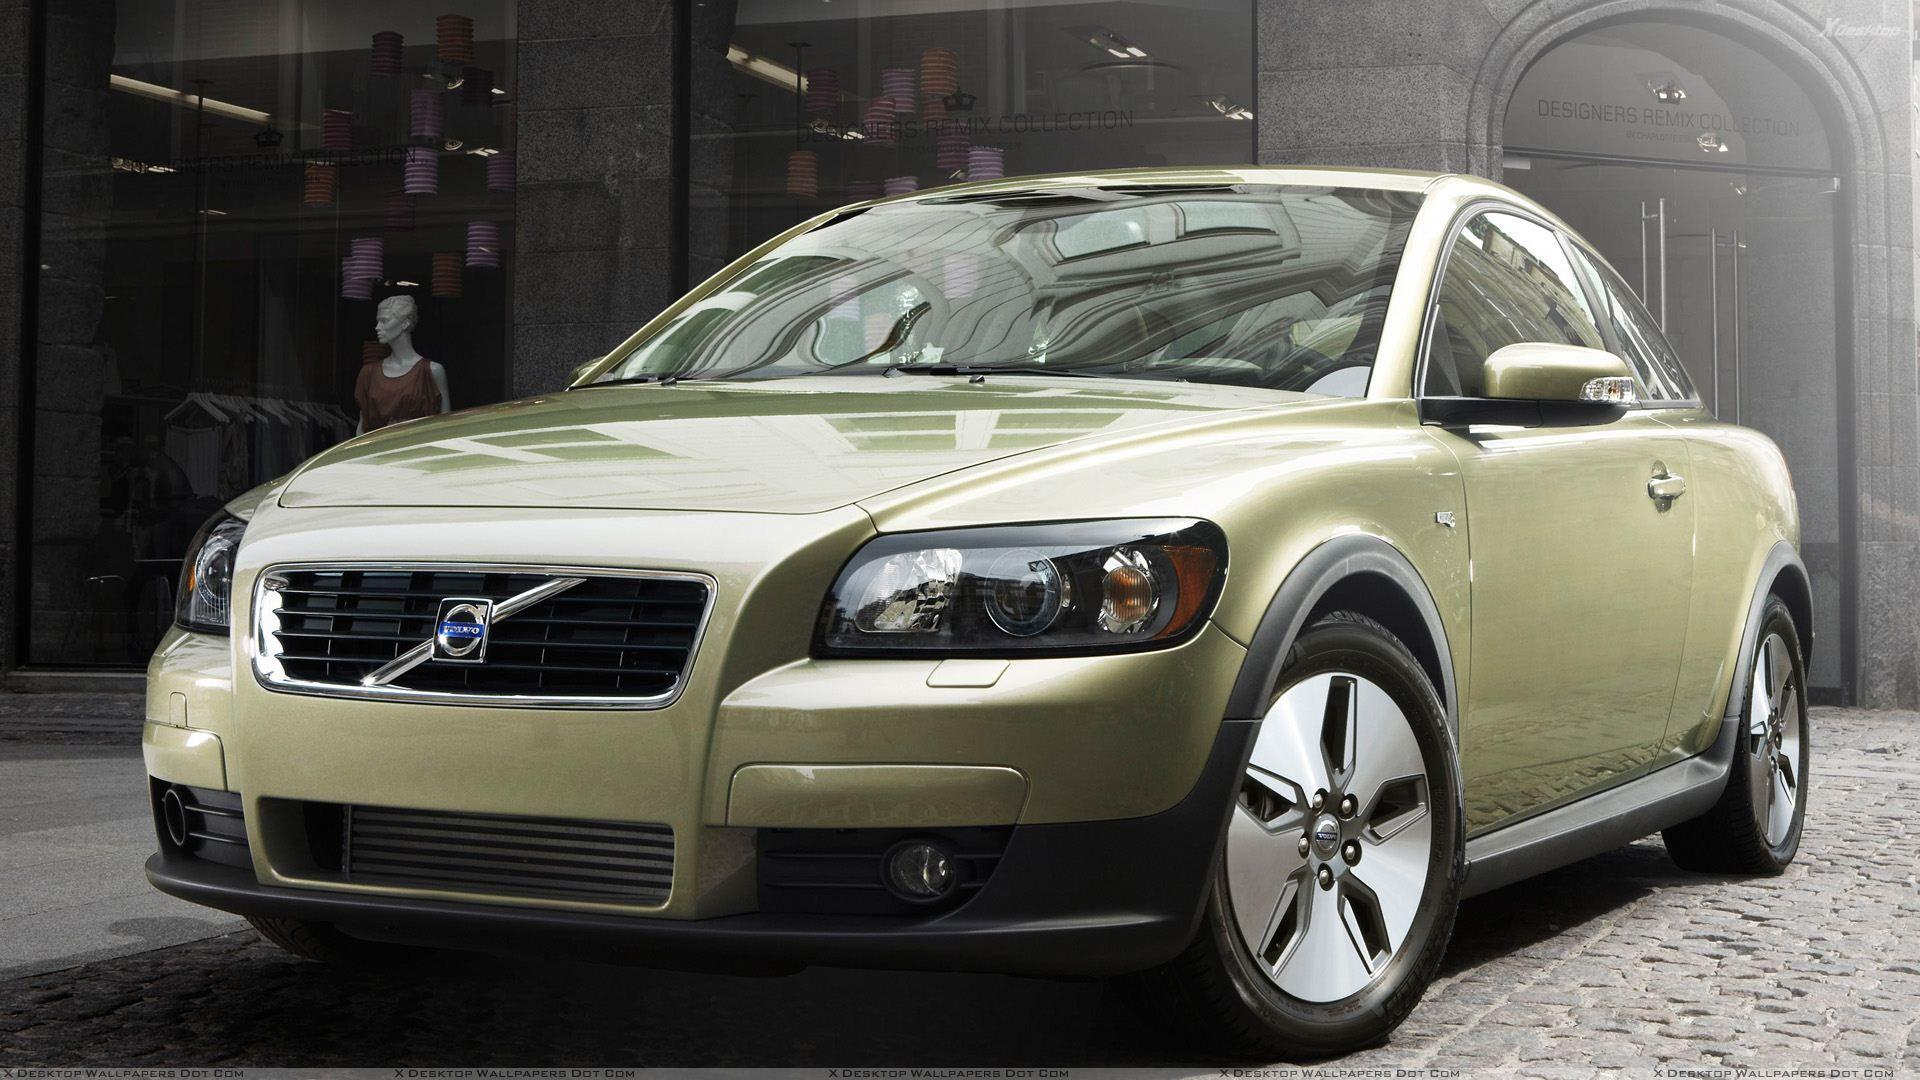 2010 Volvo C30 In Green Front Pose Wallpaper